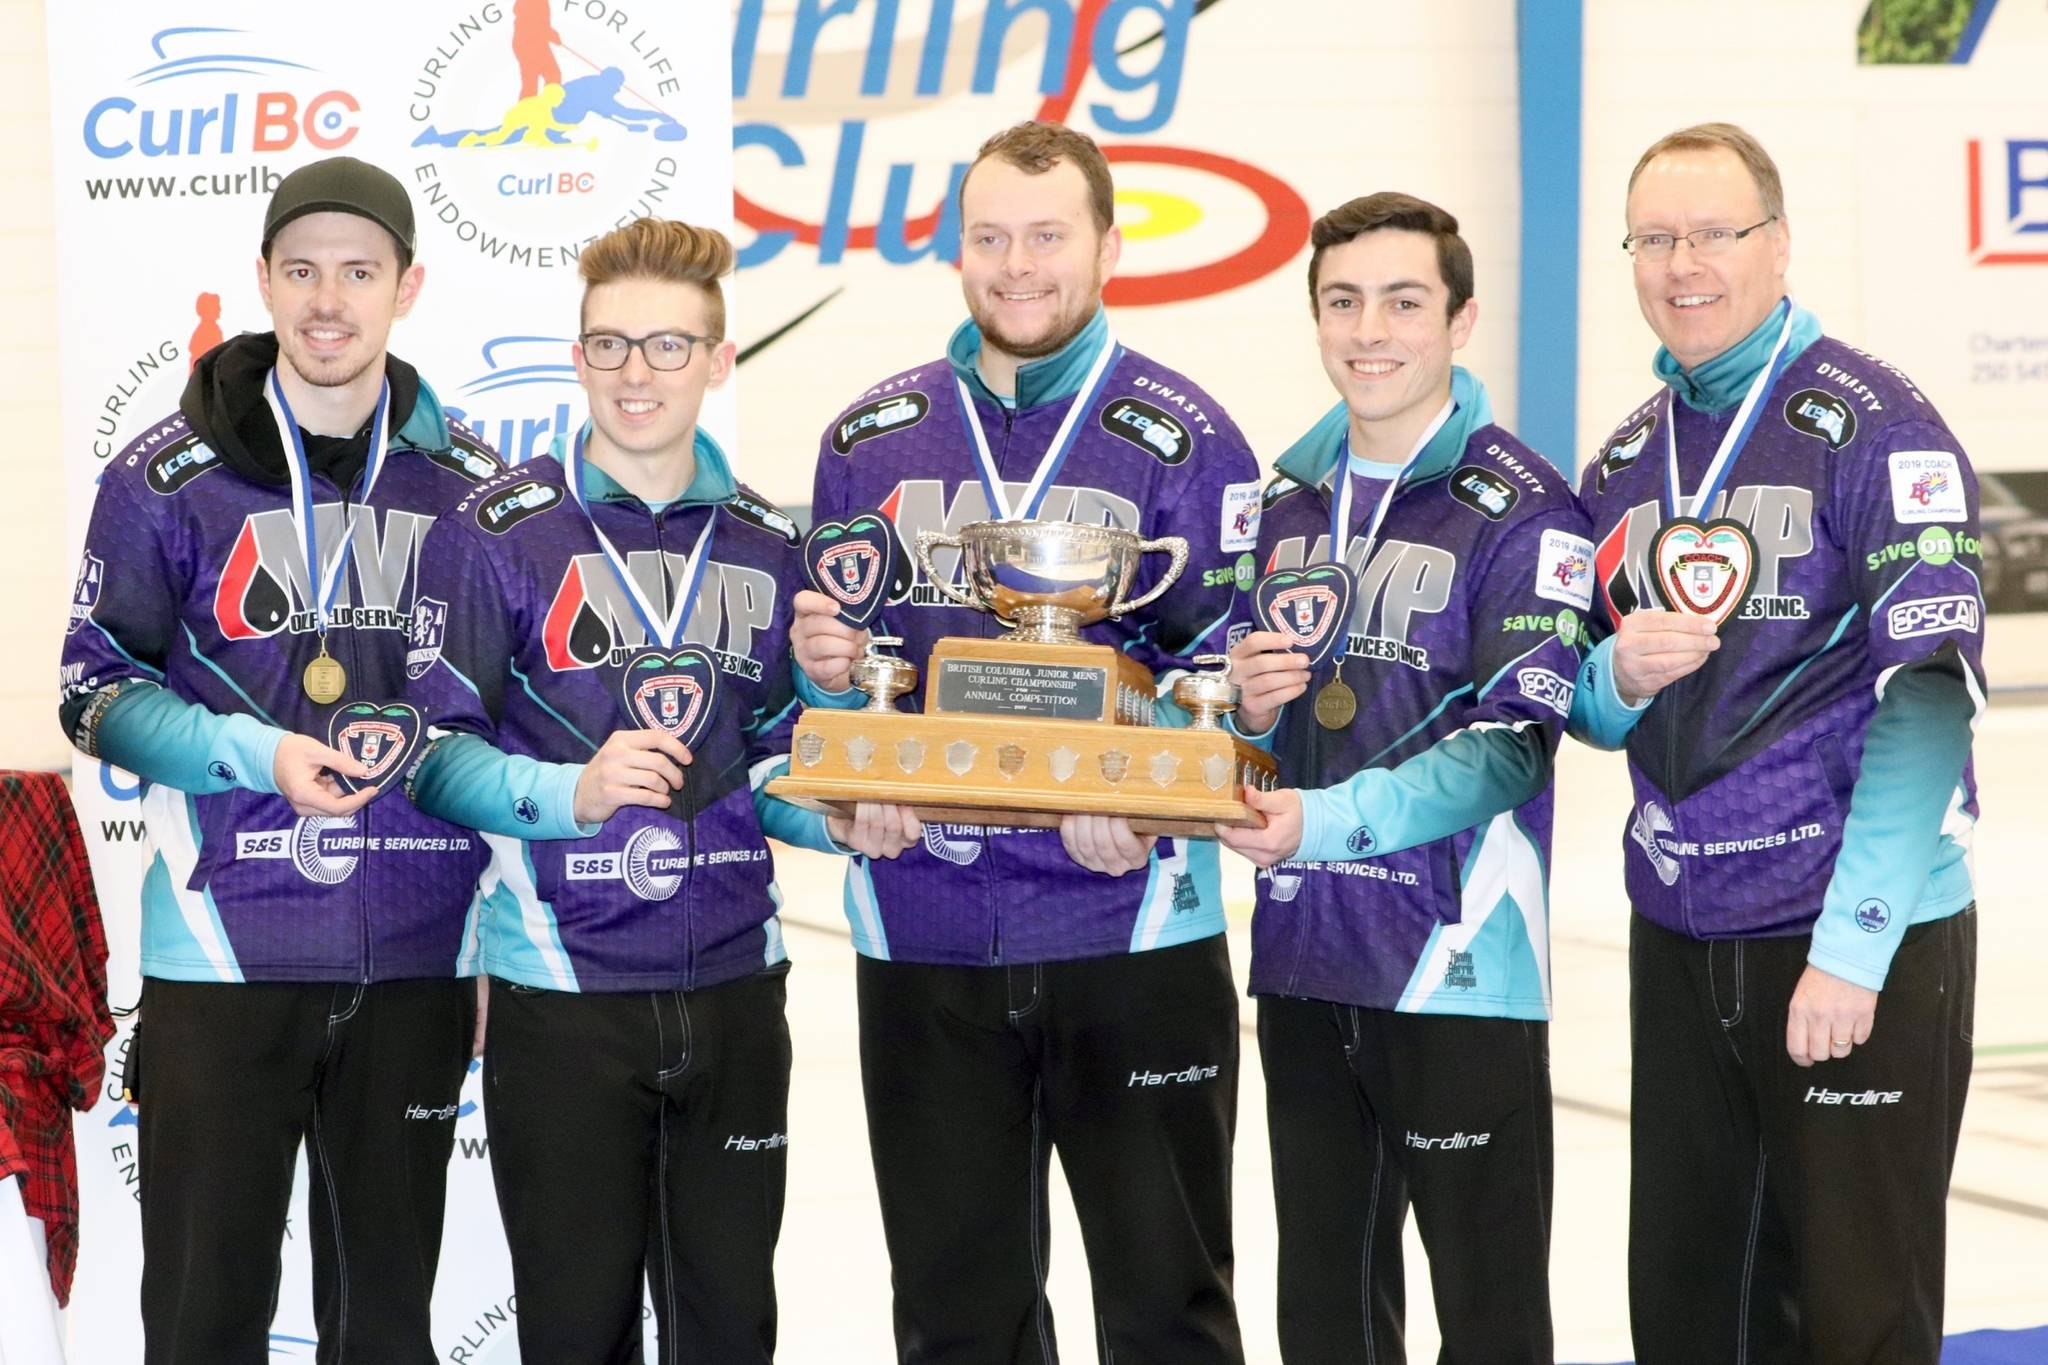 Team Tardi, from left, skip Tyler Tardi, third Sterling Middleton, second Matthew Hall, lead Alex Horvath and coach Paul Tardi show off their hardware after winning the BC provincial junior curling championships in Vernon on Tuesday, Jan. 1, 2019. (John K. White/Morning Star)